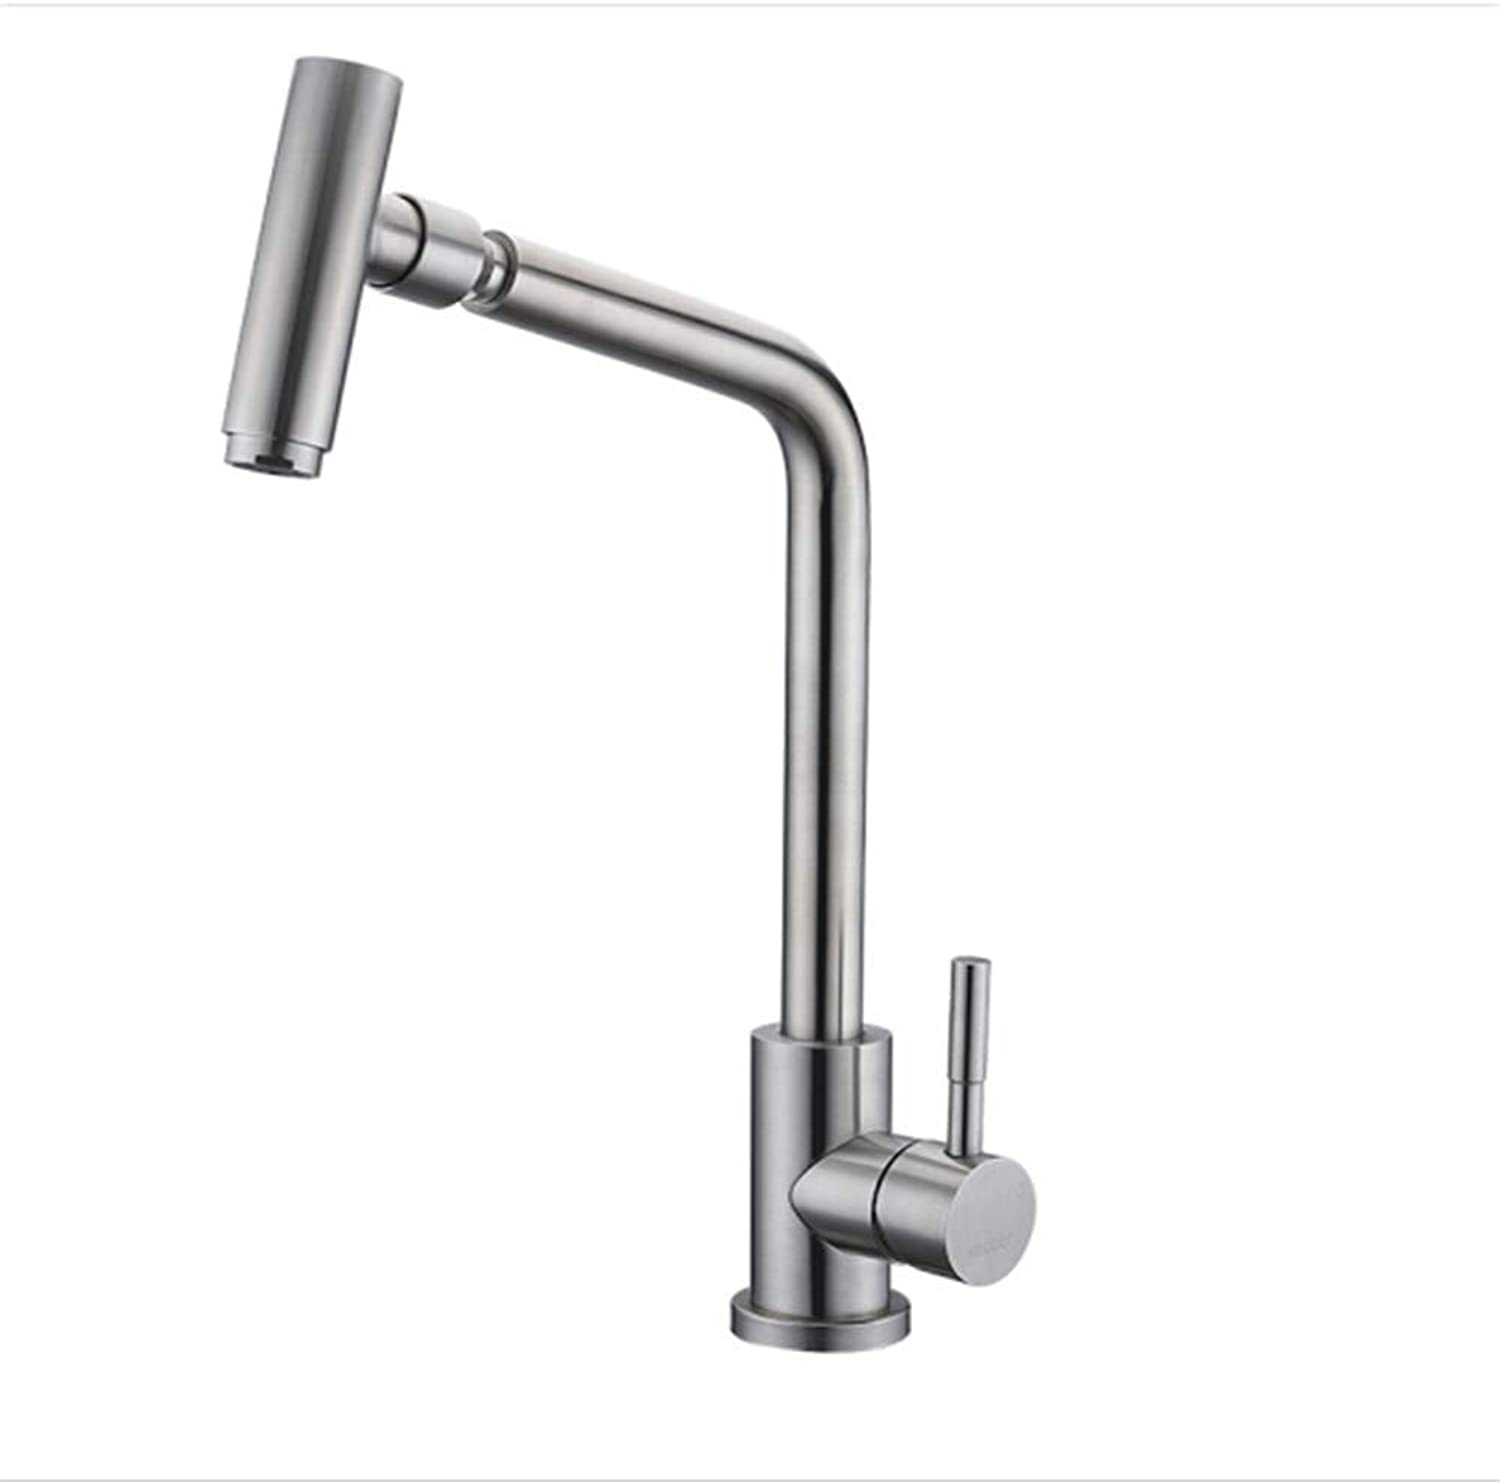 304 Stainless Steel Kitchen Faucet, Sink, Vegetable Basin, hot Water Faucet.